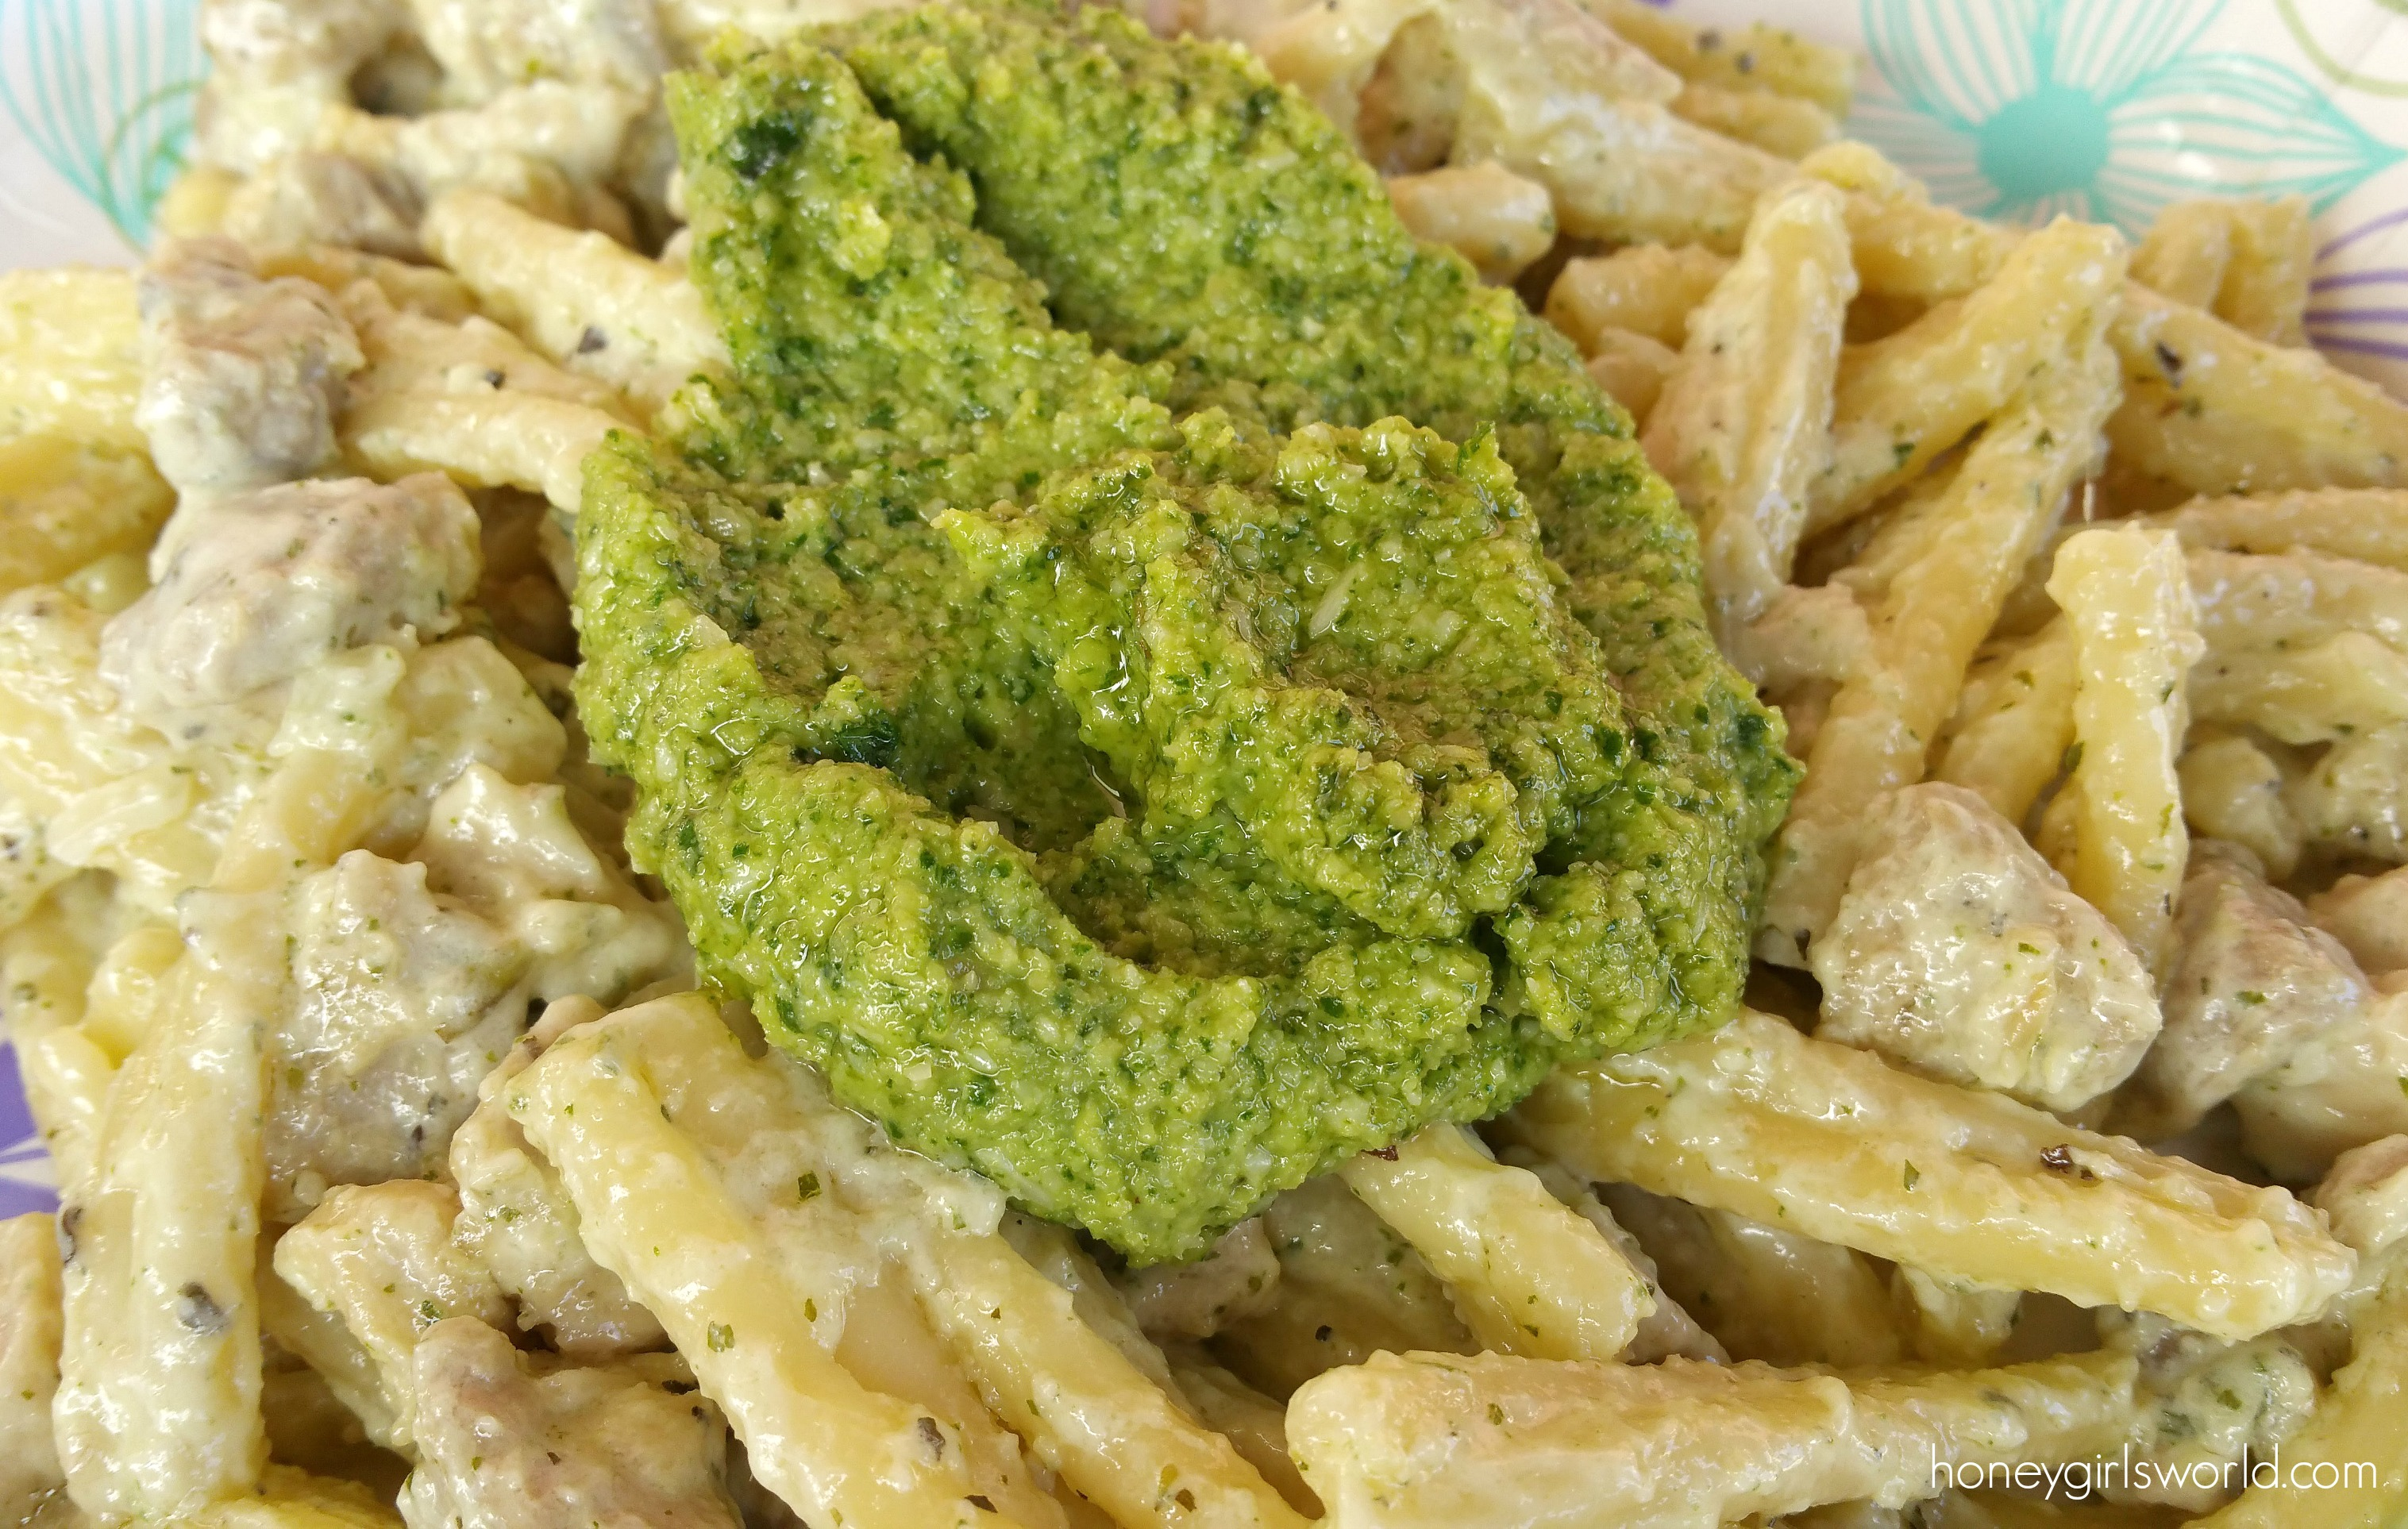 easy pesto recipe, macadamia nut pesto, pesto, pasta, easy pesto, macadamia nut pesto, italian food, food, recipe, delicious, dinner, quick pasta sauce, quick dinner, 30 minute meals,